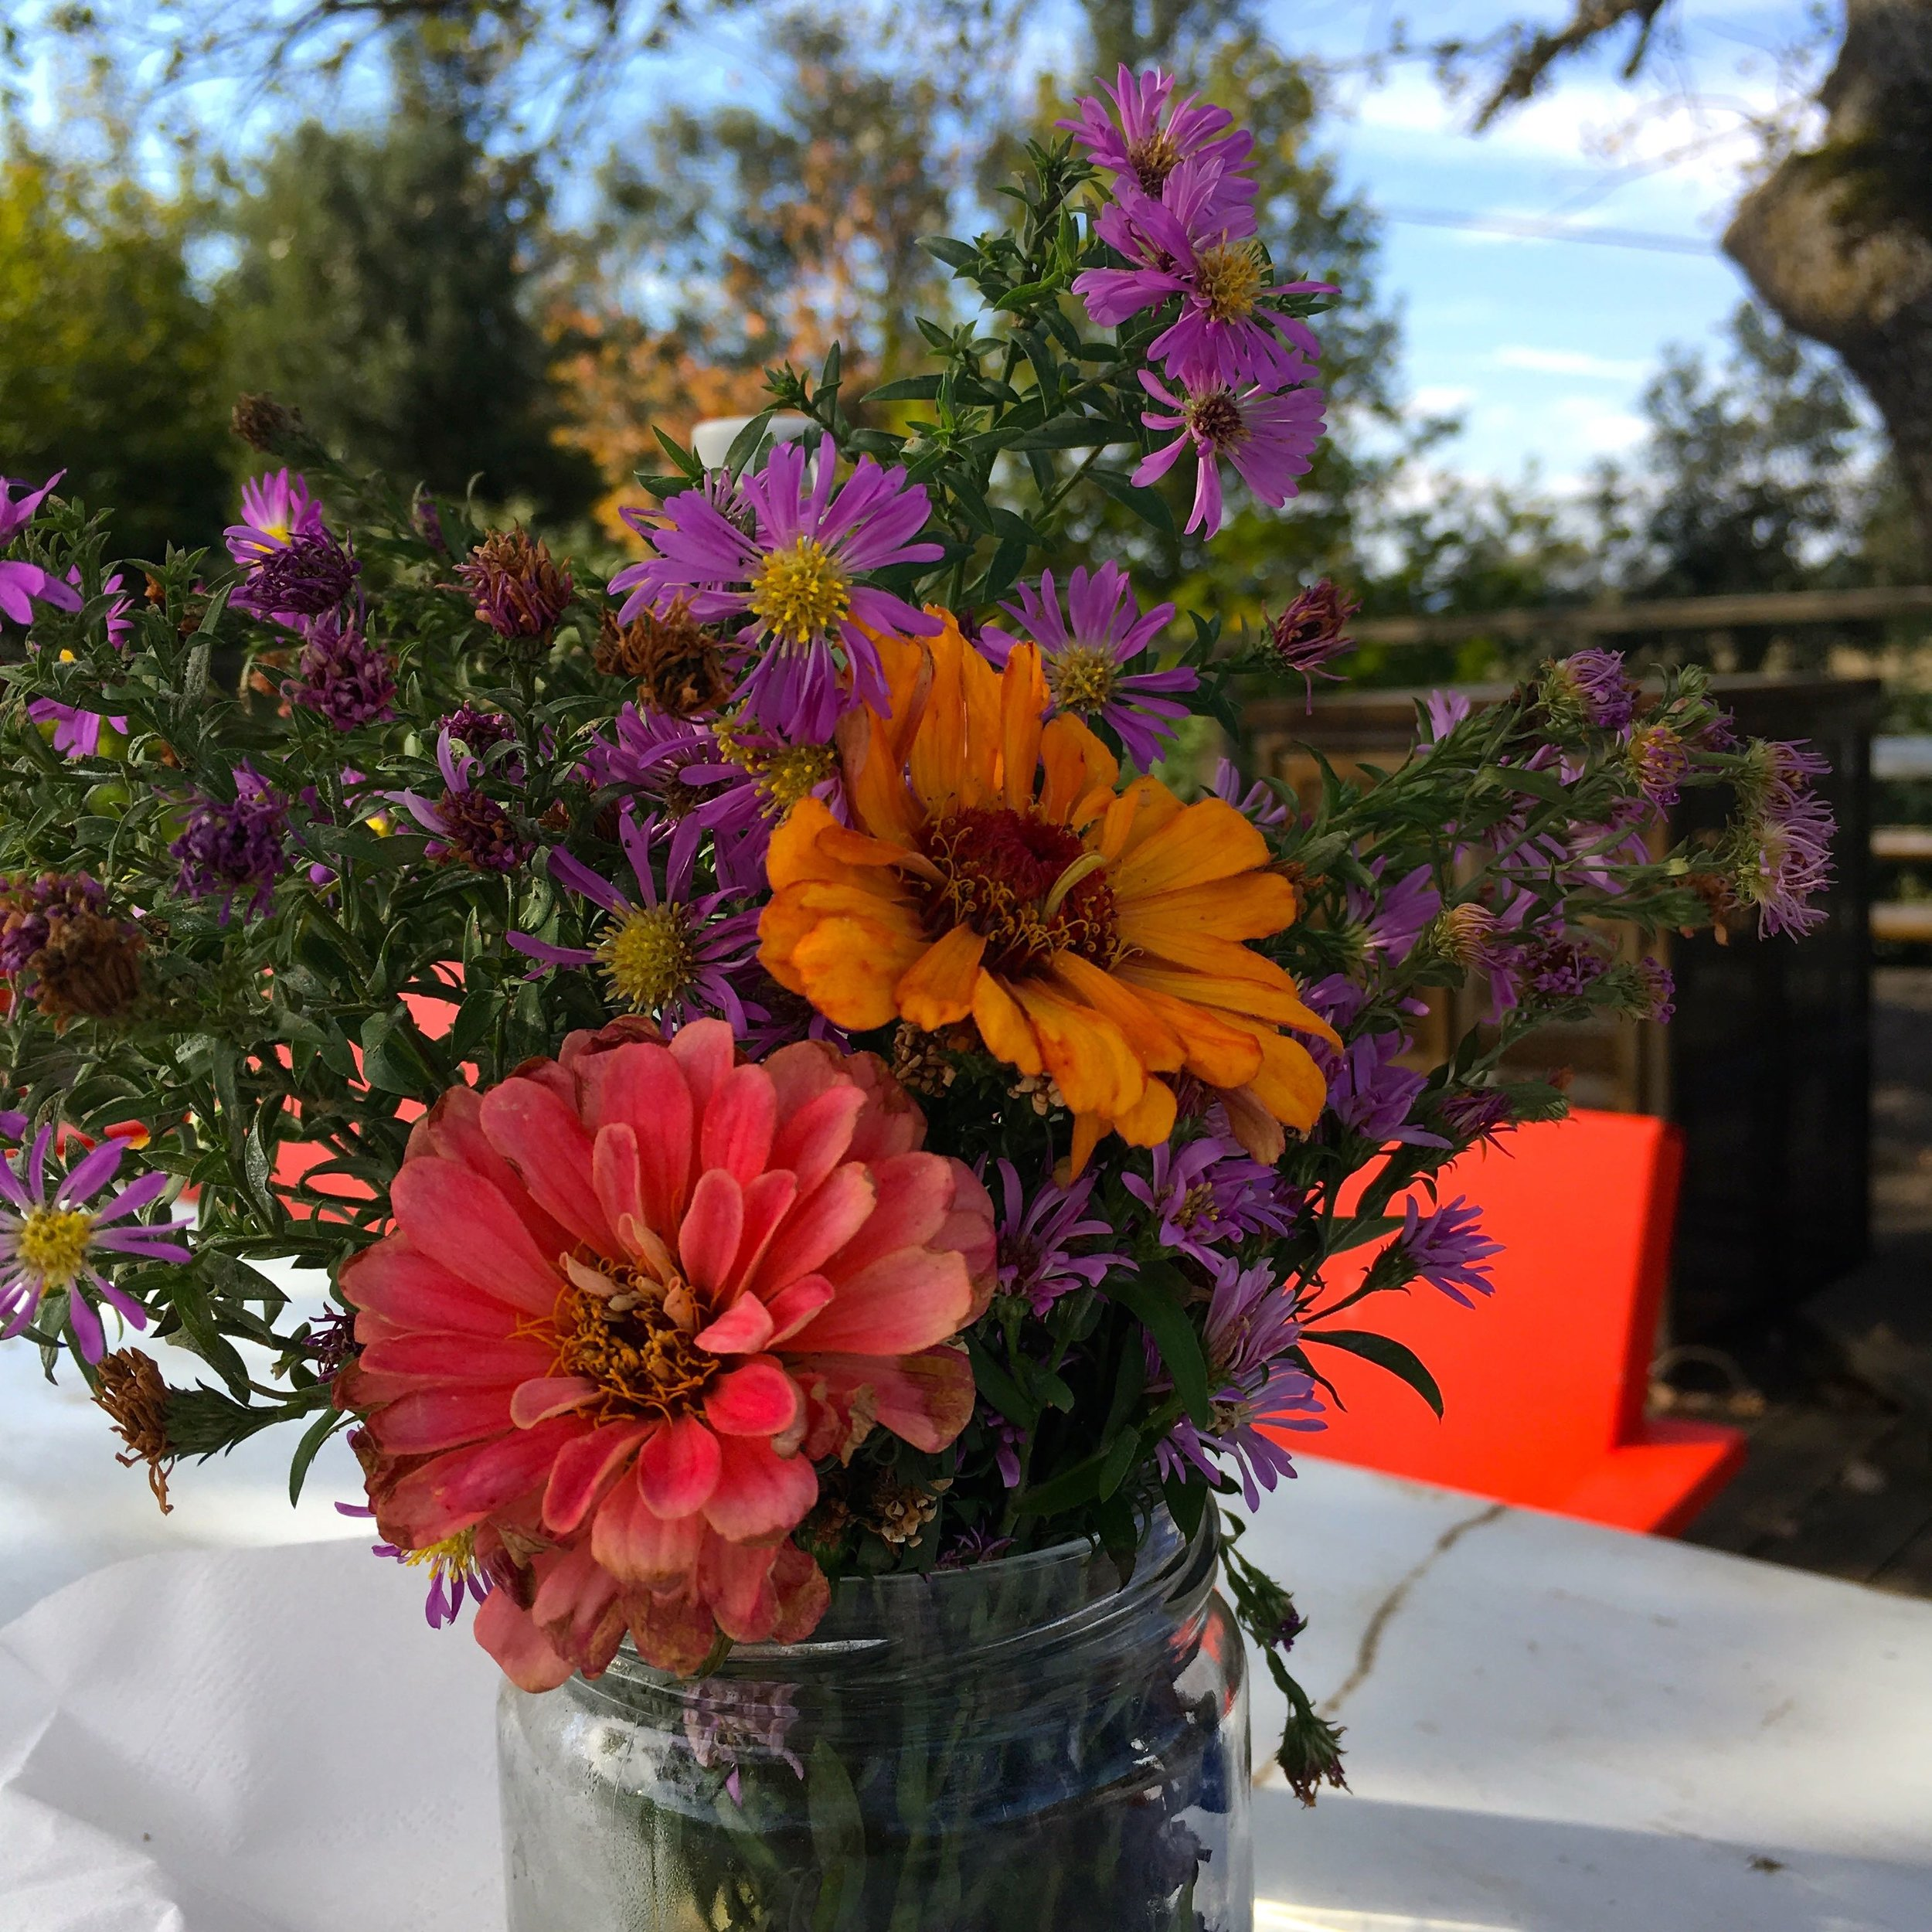 A jam jar of flowers no doubt picked from the vineyard's gardens